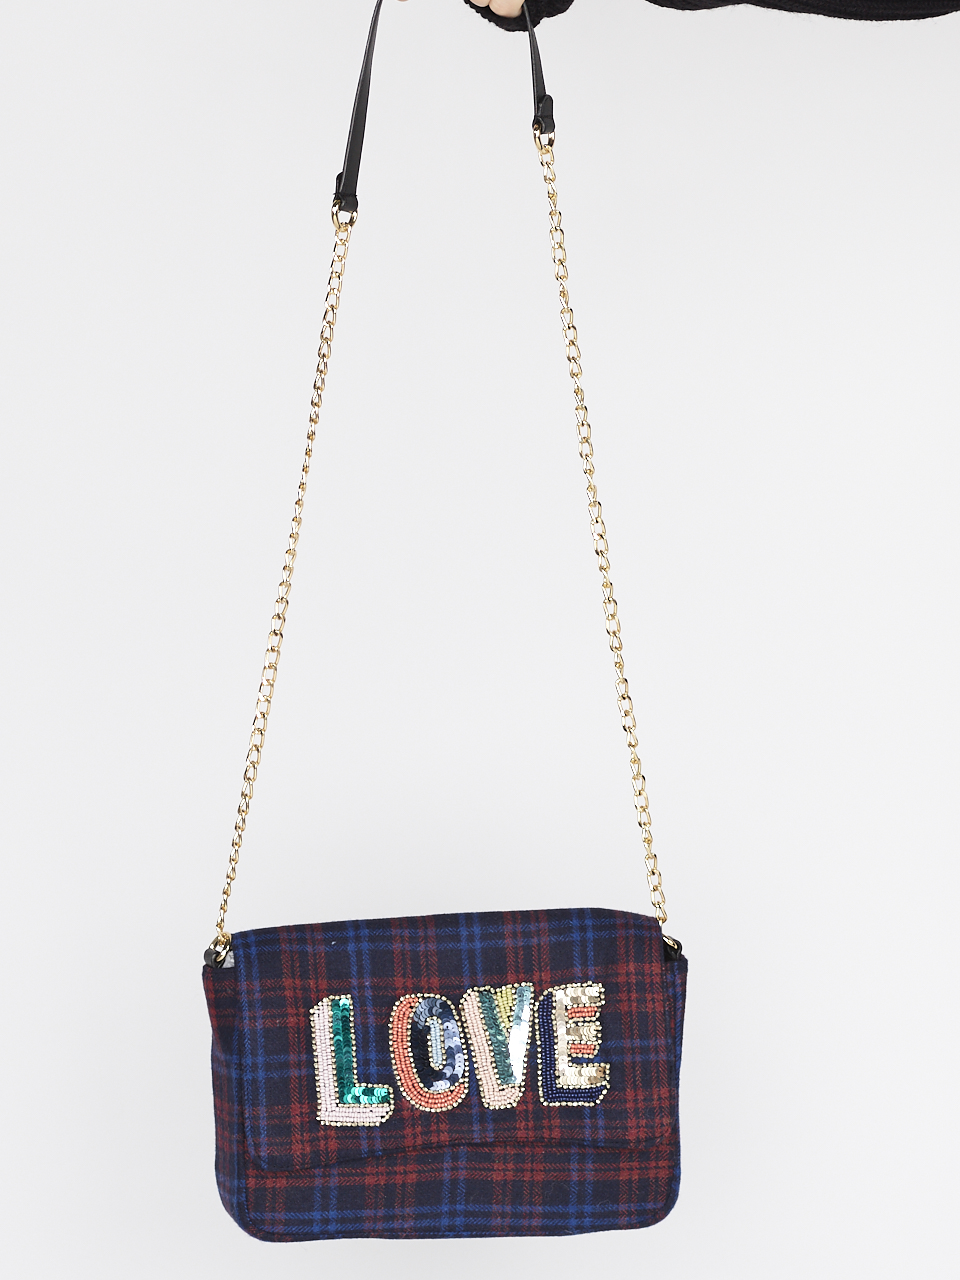 BAG LOVEIT